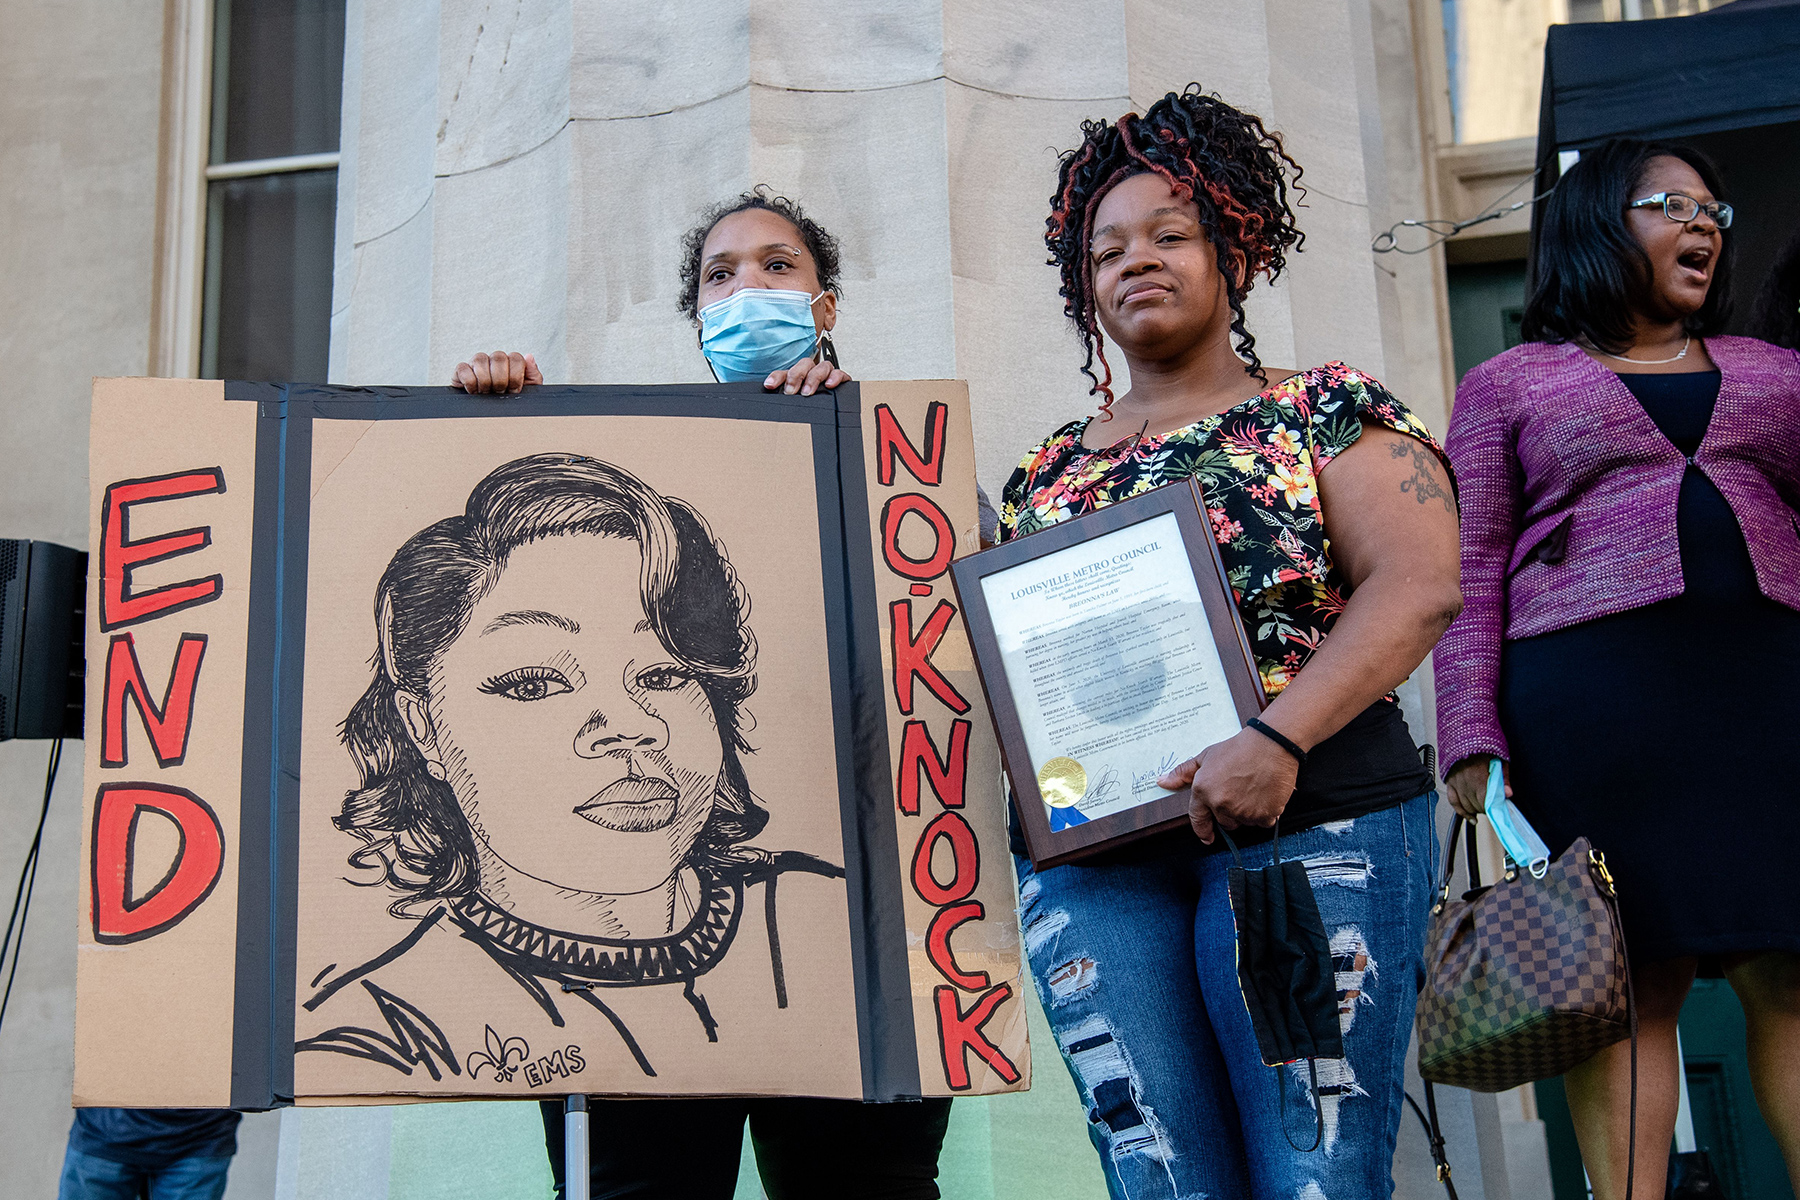 Here S How To Demand Justice For Breonna Taylor Rolling Stone